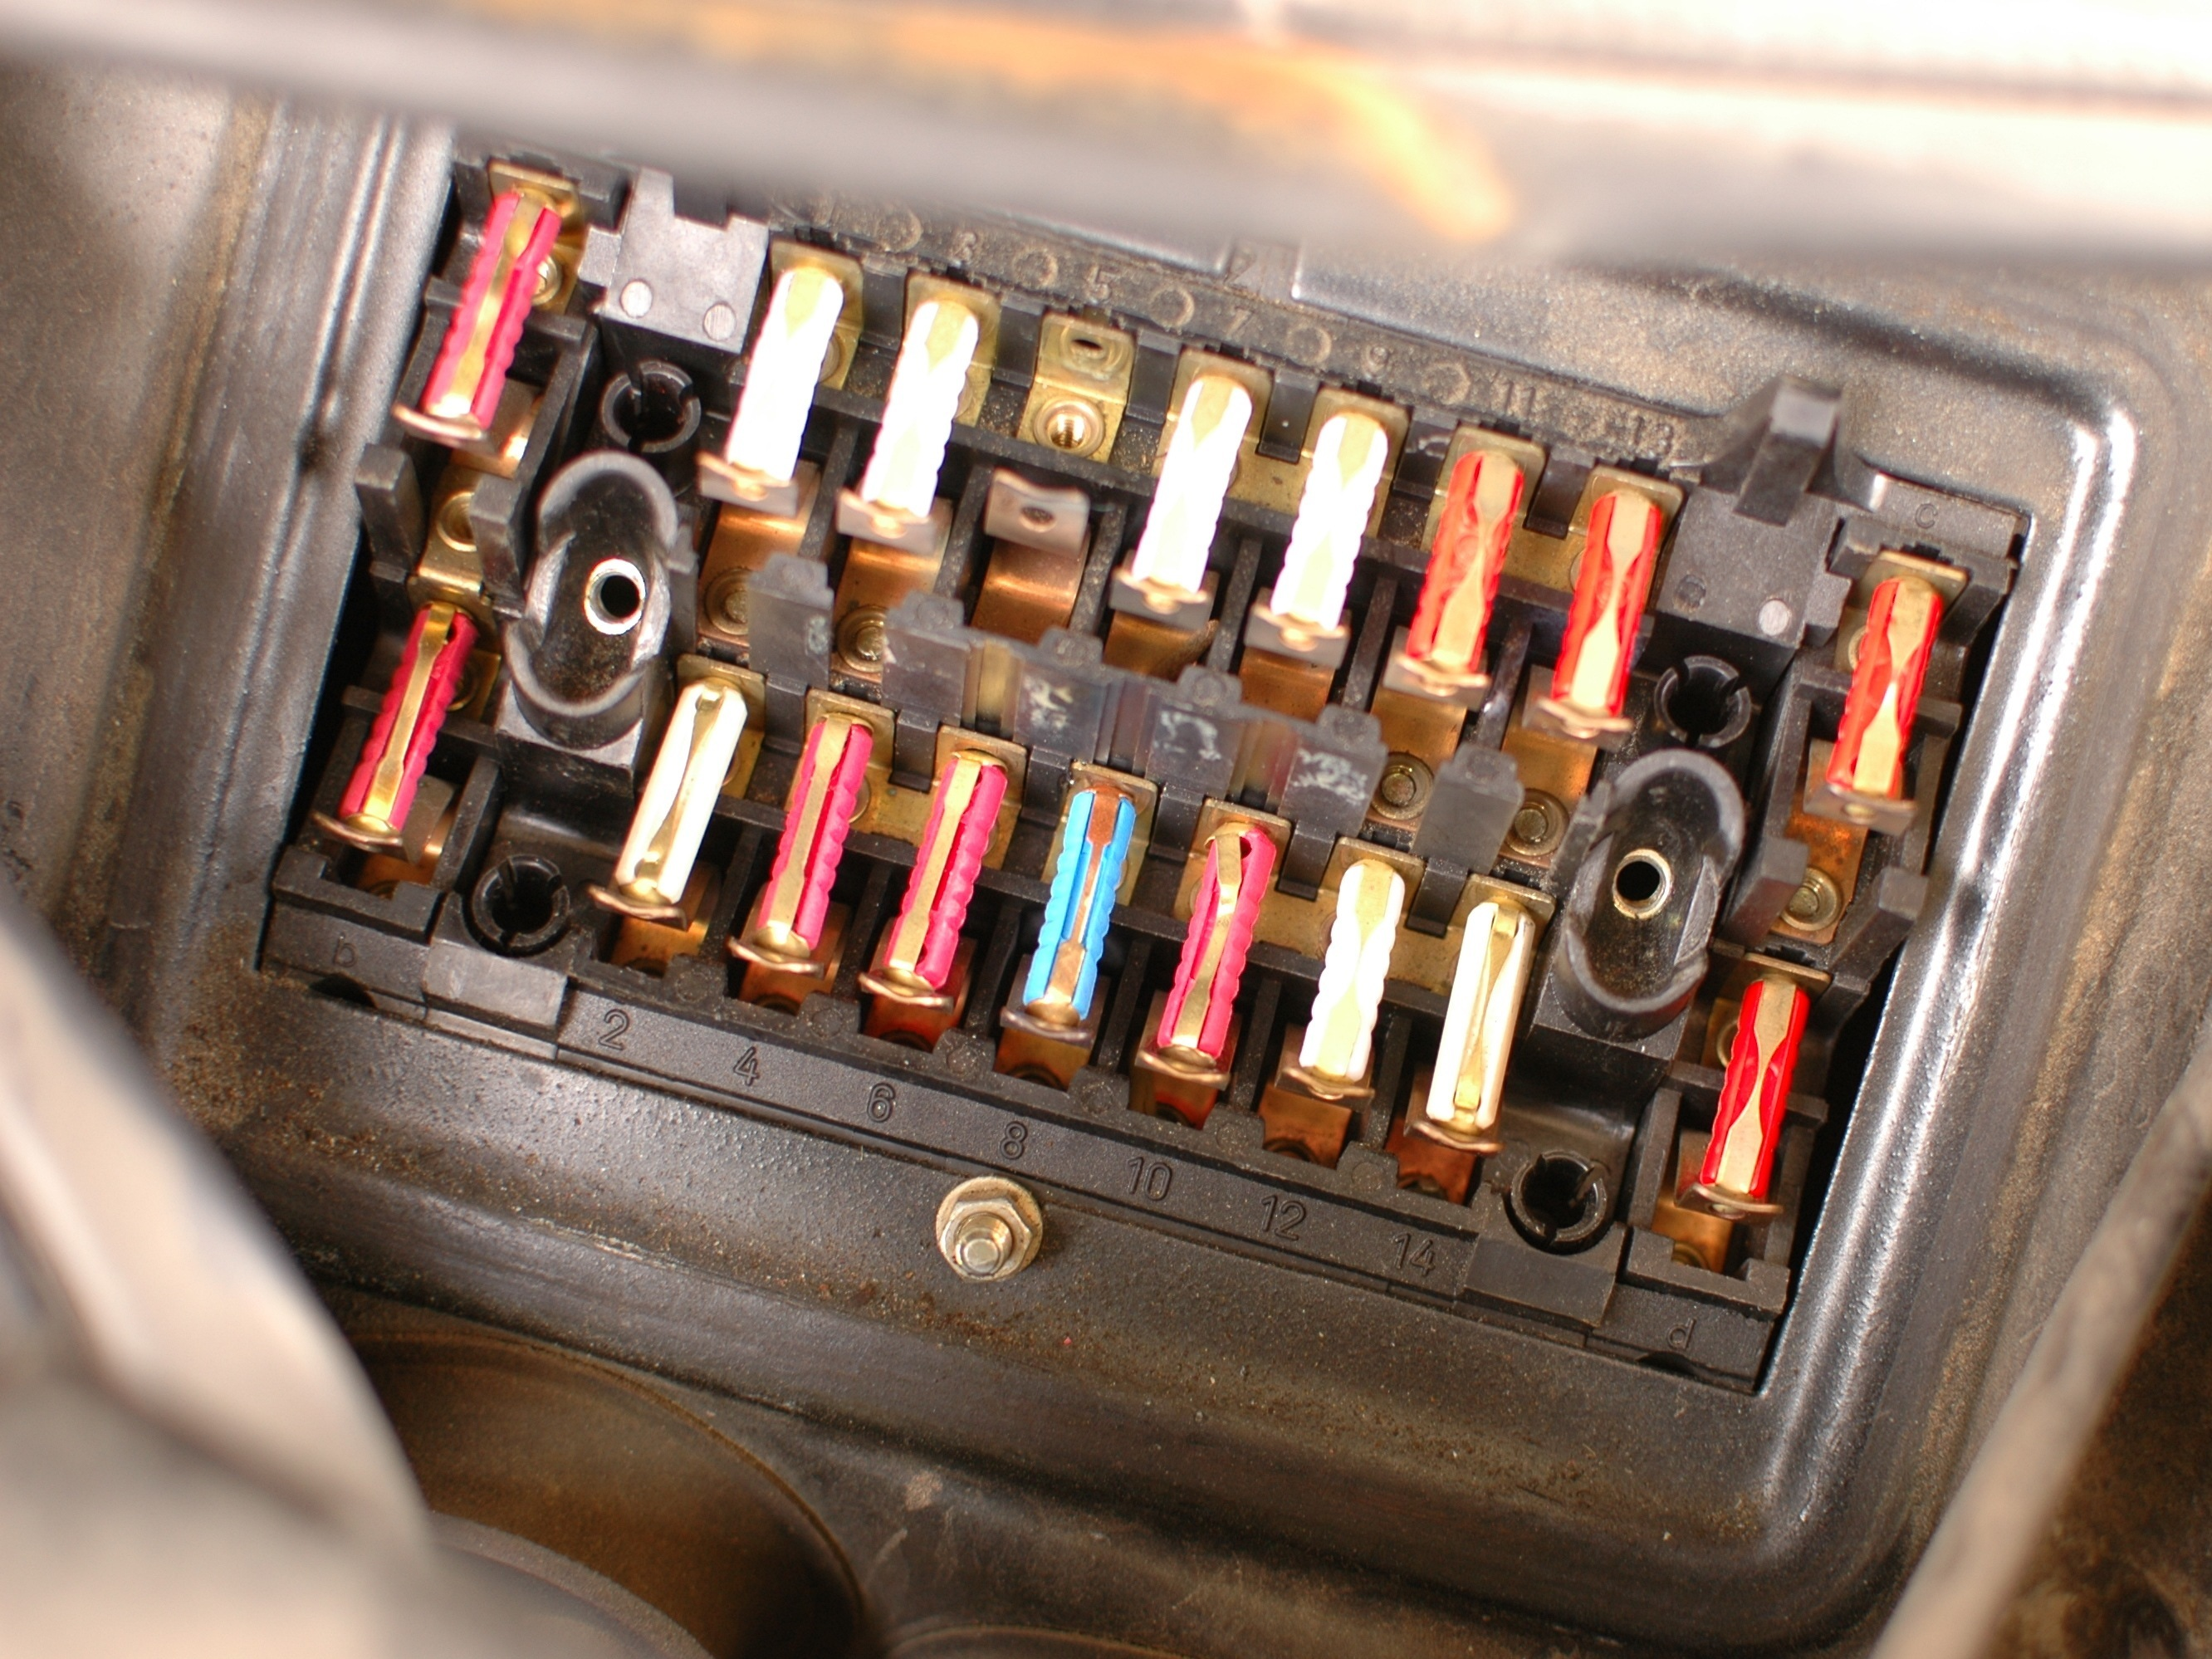 AfYAfmoCaMTVU2ap how to check mercedes w123 fuses ifixit mercedes 300d fuse box location at bakdesigns.co